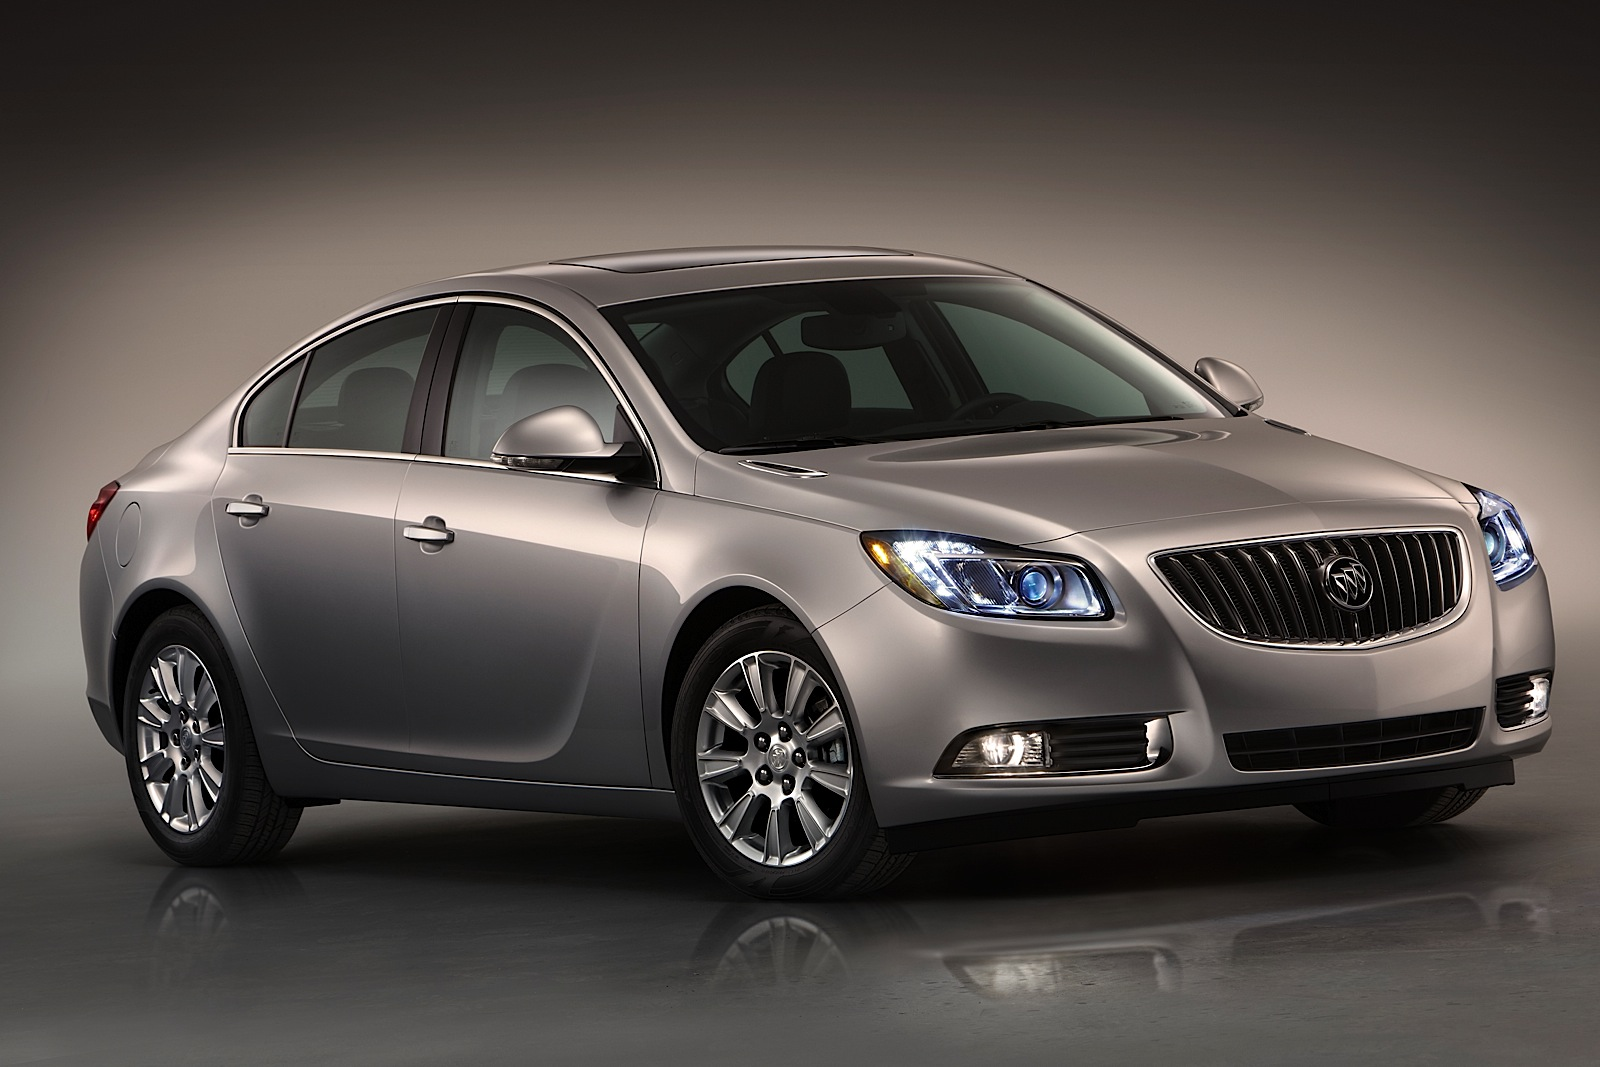 2012 Buick Regal eAssist The Elegant 2012 Buick Regal Assist Hybrid